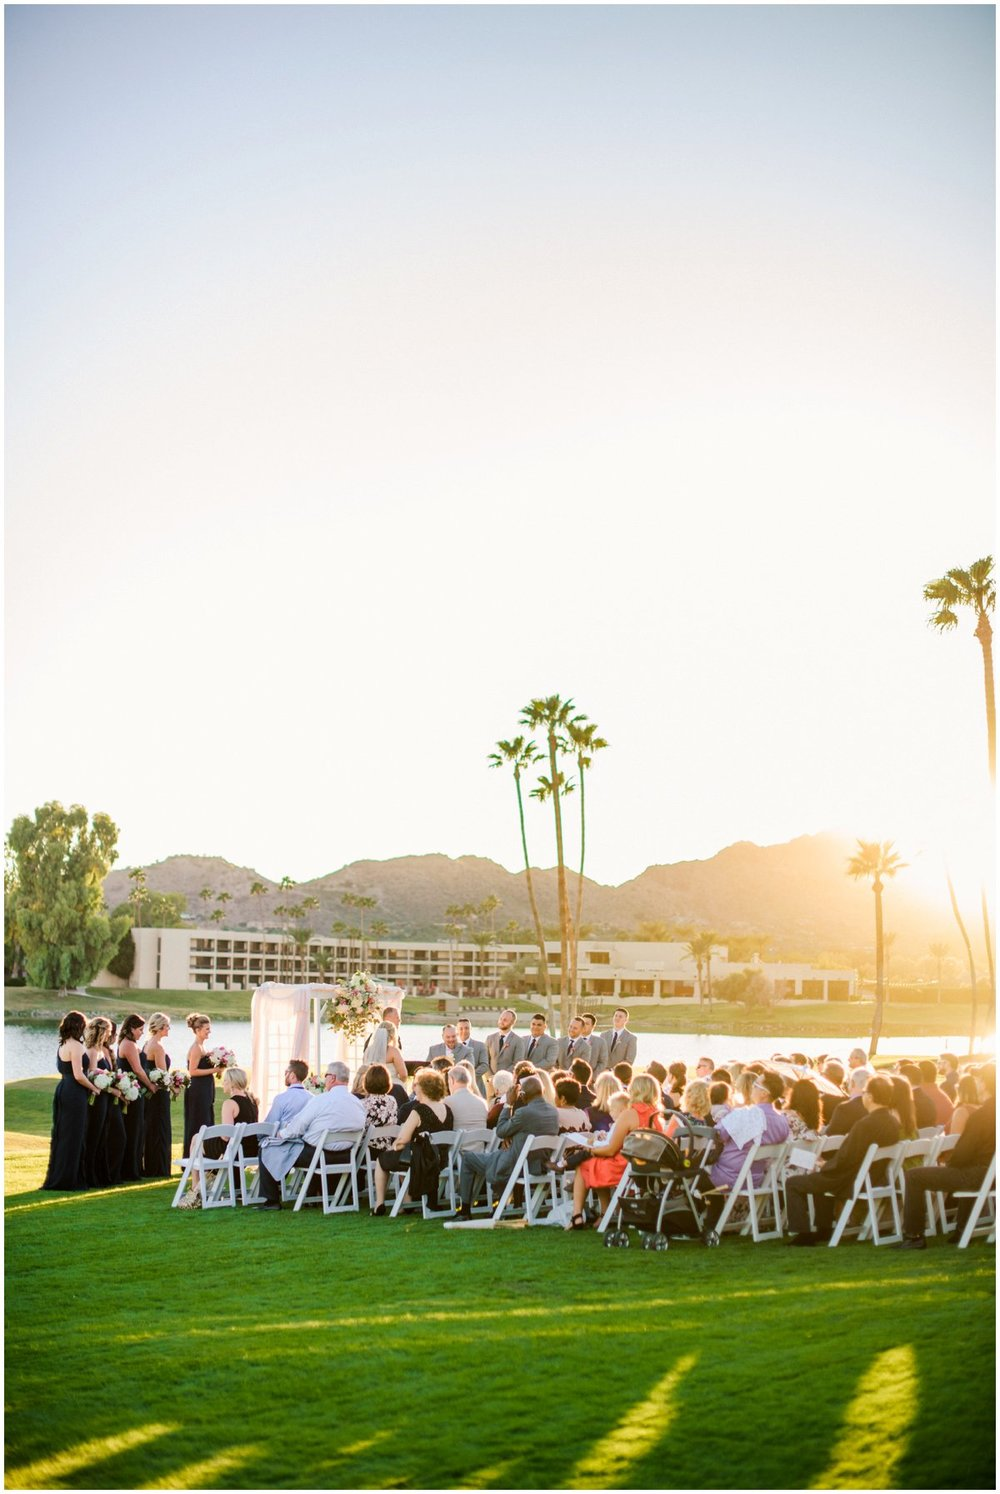 Navy and Gold Romantic McCormick Ranch Wedding in Scottsdale, Arizona with Wedding Planning from Your Jubilee and Flowers and Design by Table Top Etc.